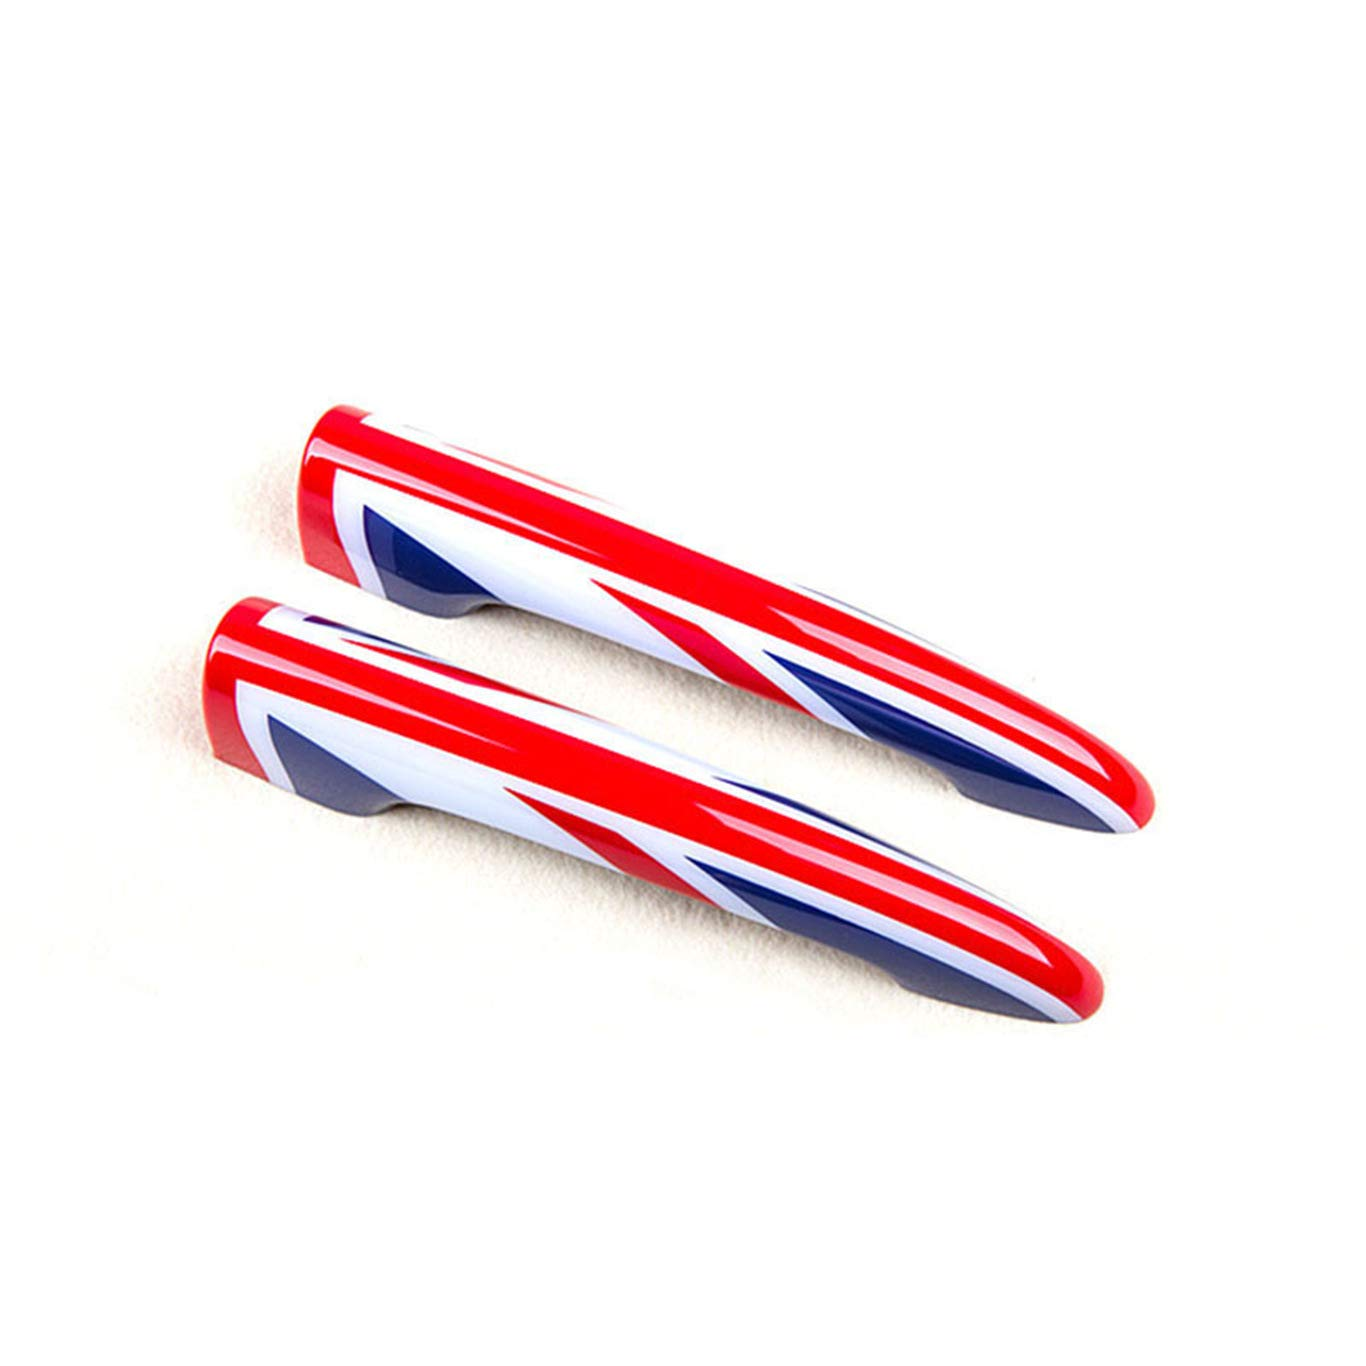 Blue//Red Union Jack UK Flag ABS Sticker Cover Trim Cap for Mini Cooper ONE S JCW R55 Clubman 2010-2016 Rear View Mirror Cover with Senor Hole